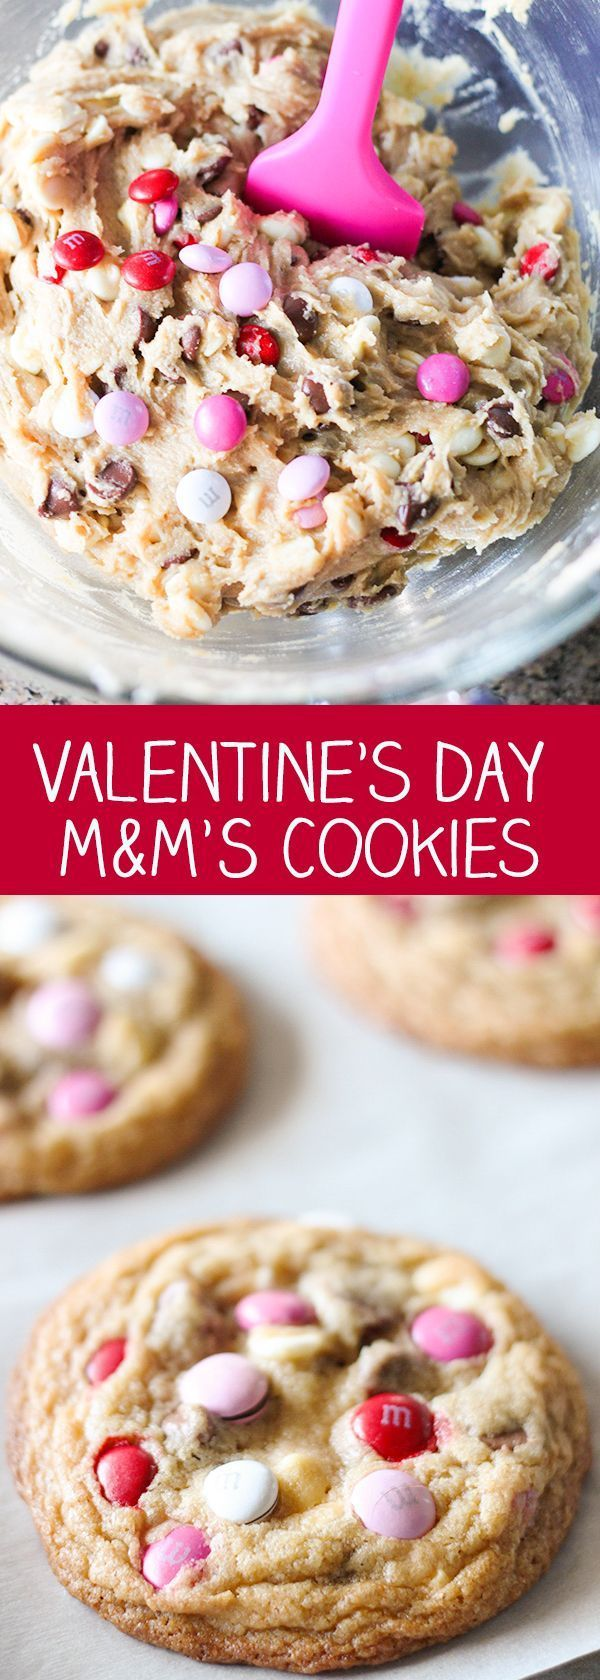 These perfect M&M cookies are loaded with milk chocolate chips, white chocolate chips and M&M�s. Perfect for gift giving or the holiday treat or this coming Valentine's Day! Easy to make, sweet and delicious! For more easy food recipes, creative craft ide